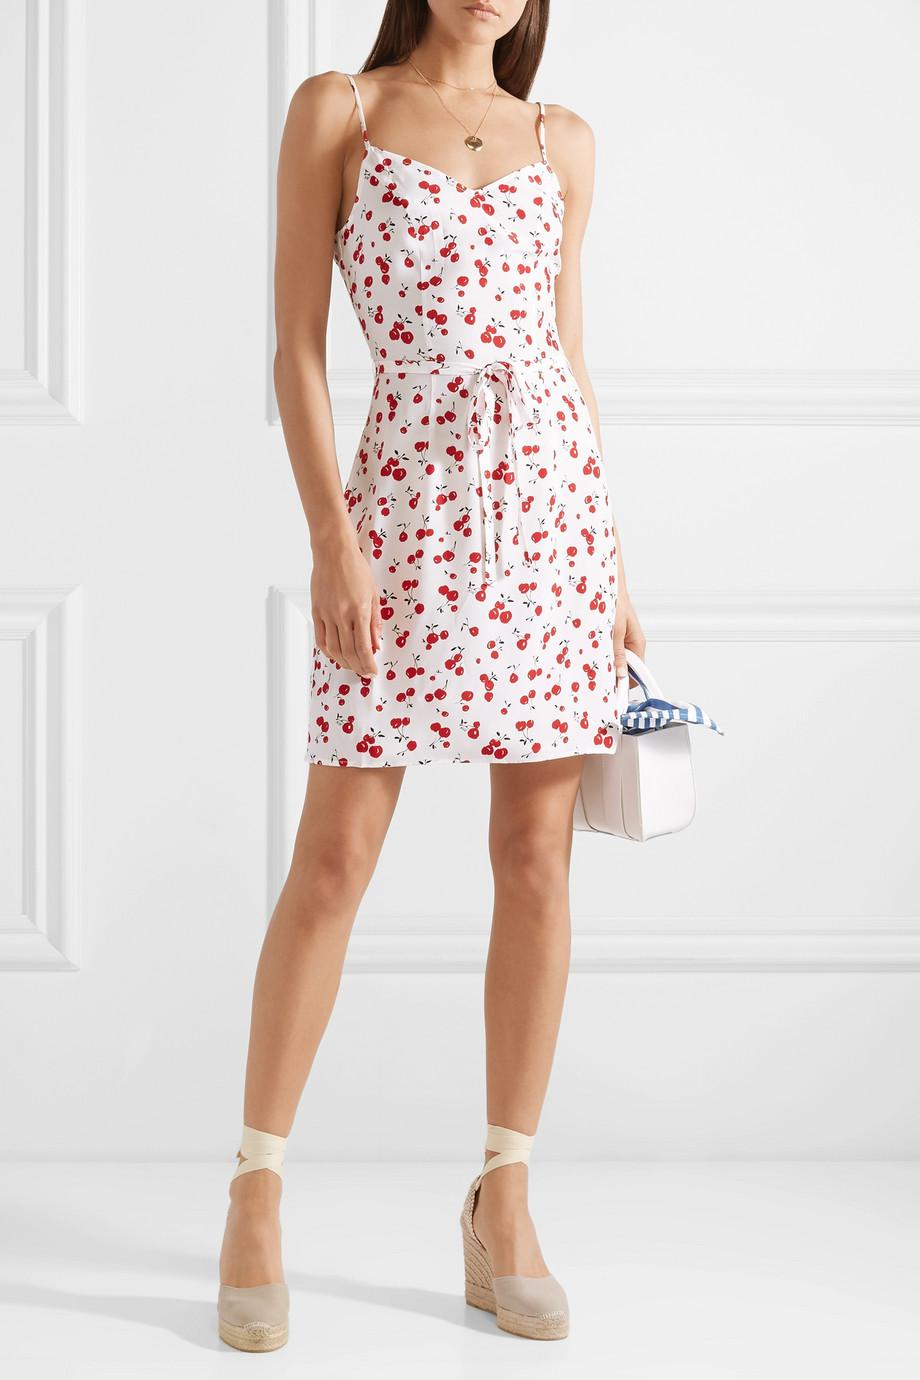 Free Shipping Pick A Best Lily Printed Silk Crepe De Chine Mini Dress - White HVN Outlet Cheap Price Best Choice Discount Manchester Sneakernews qWyZbMU0Q